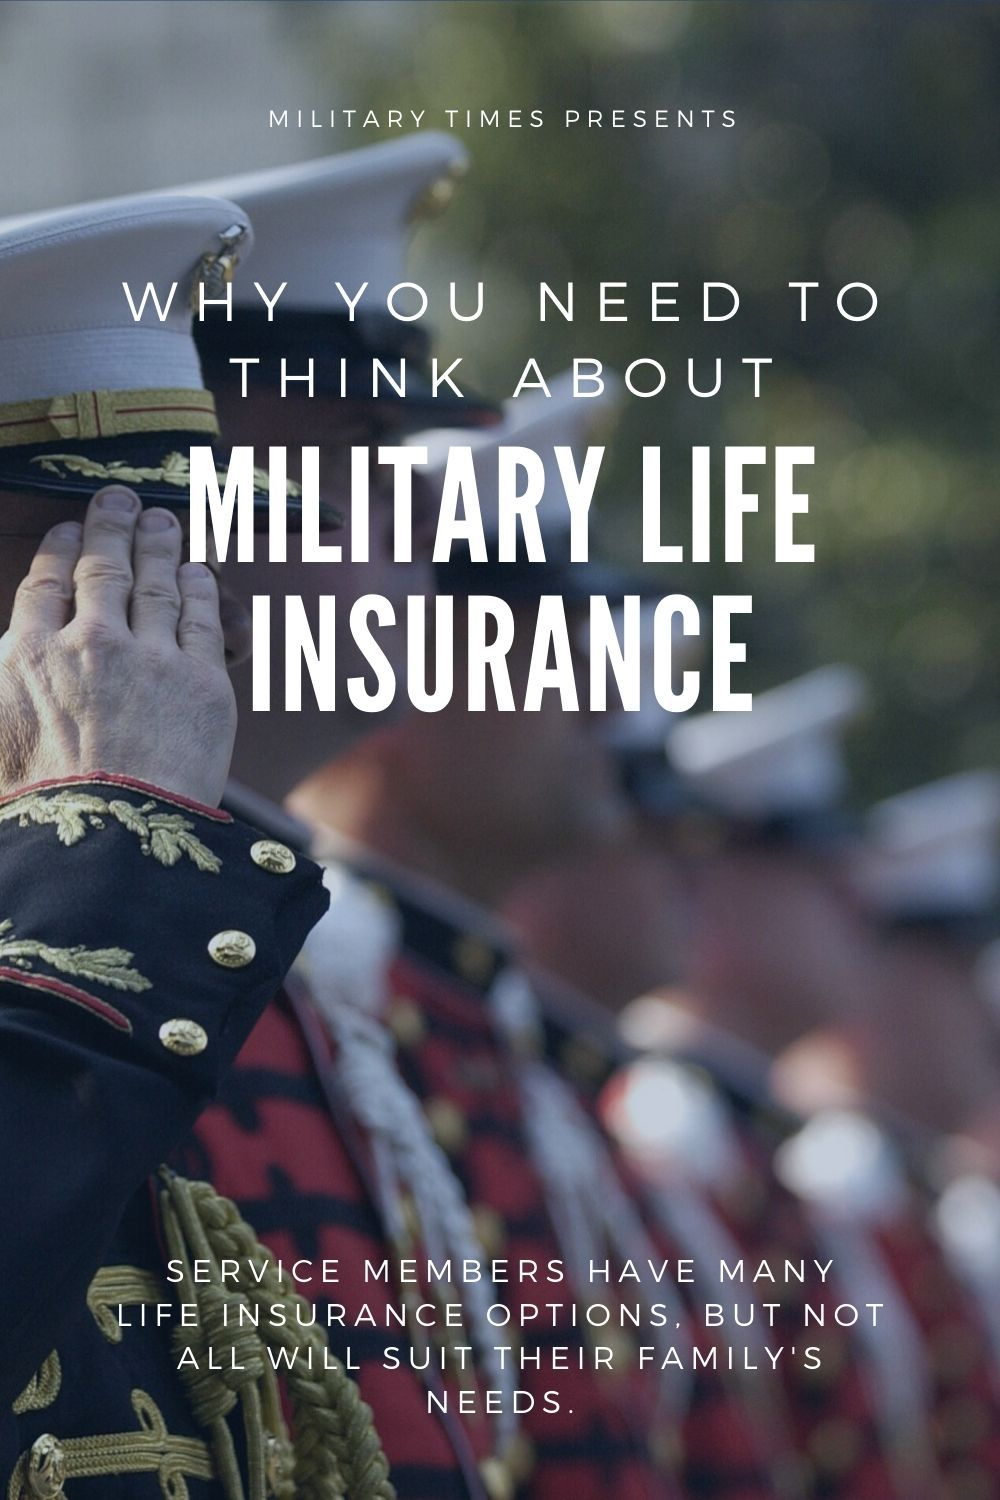 Here's why you need to think about military life insurance